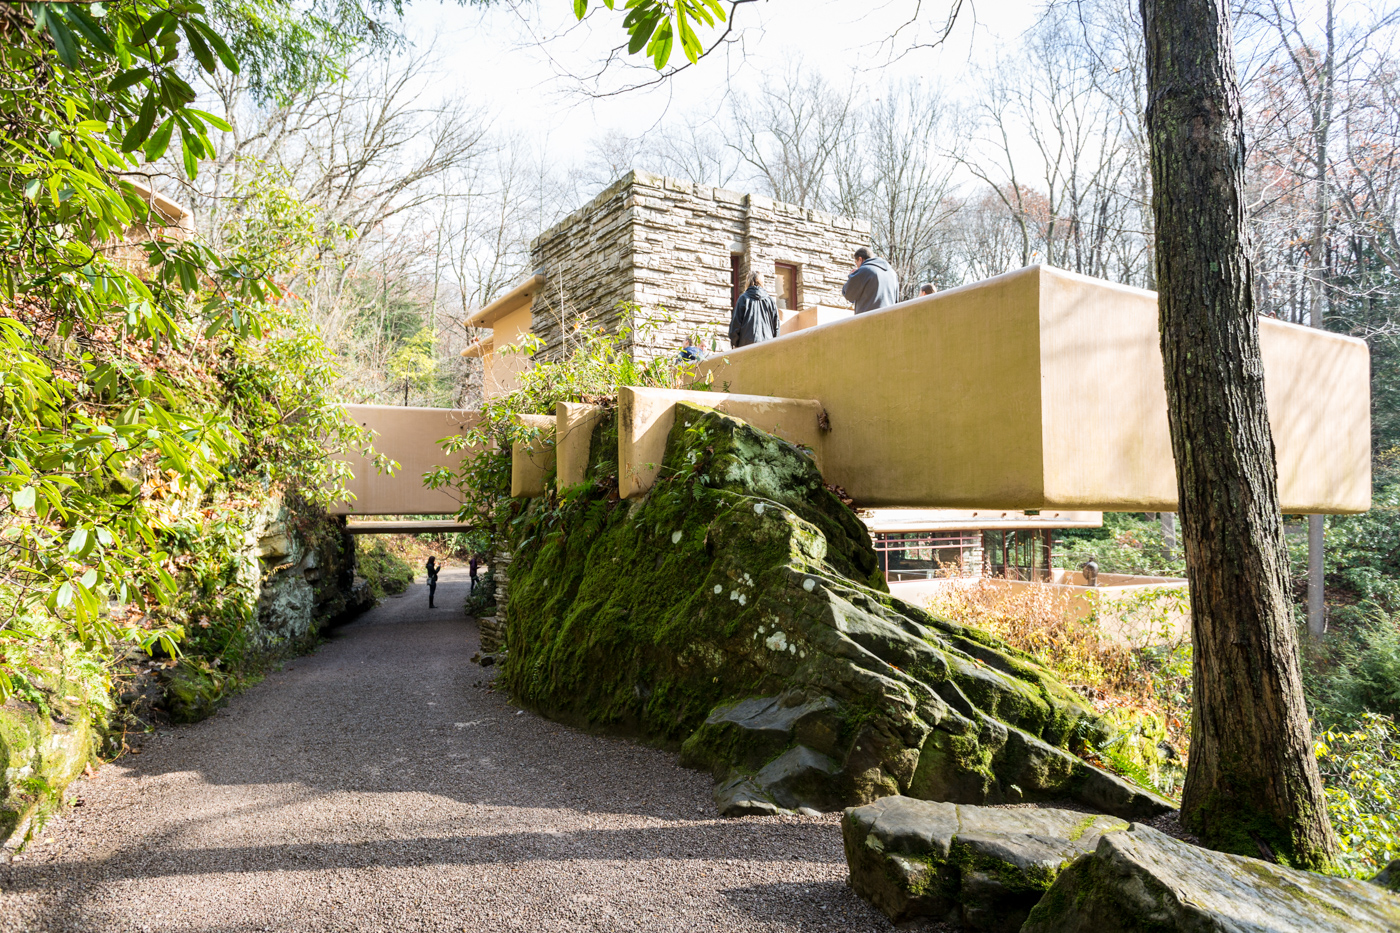 Rear view of Fallingwater